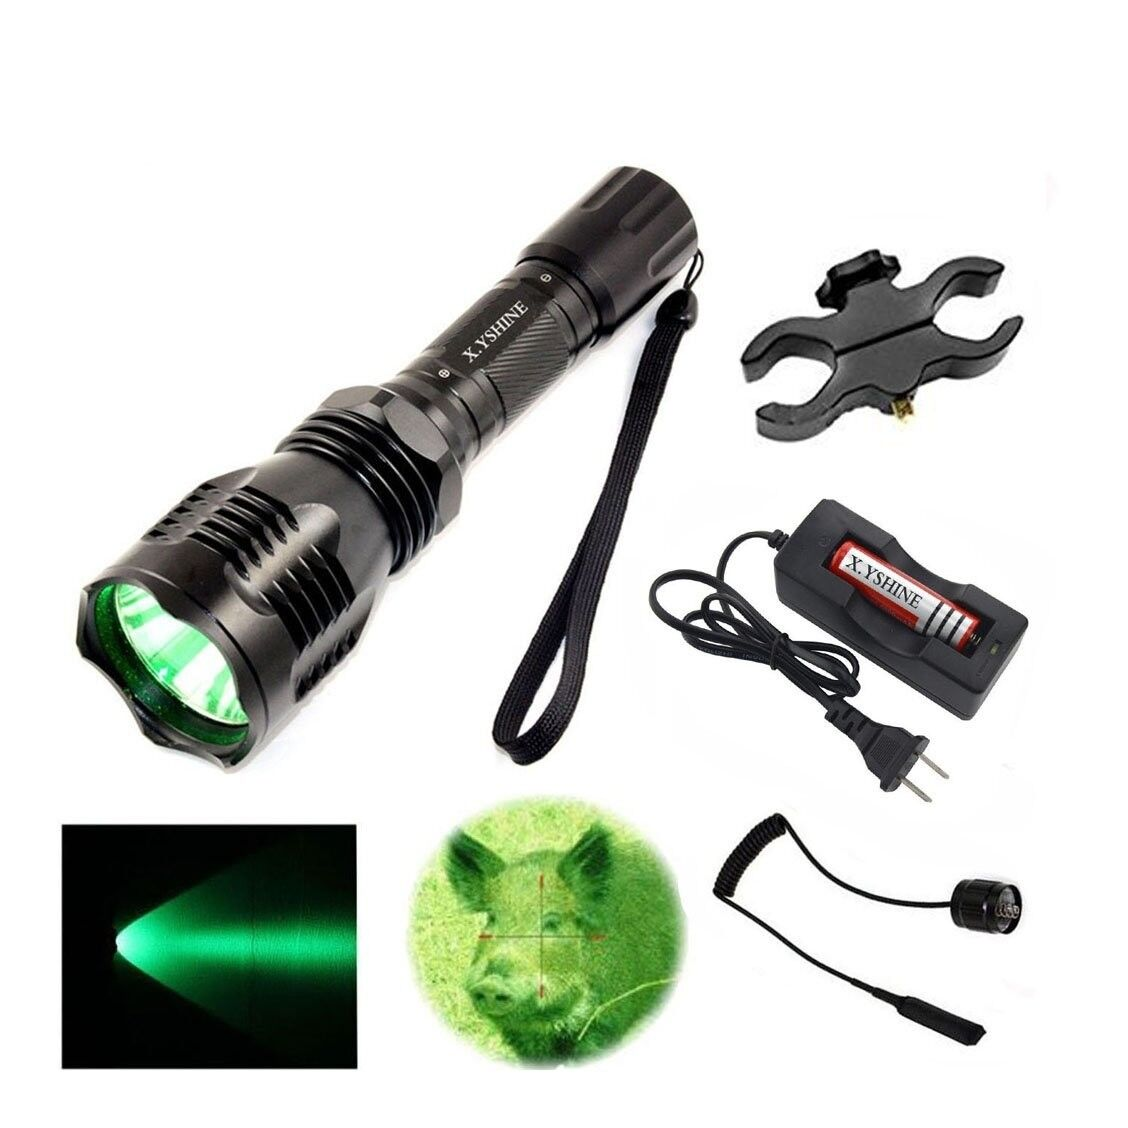 Green Led Hunting Light Kit 500+ yards Coyote, Varmint,  Hog Night Hunt 350 LUMEN  2018 latest